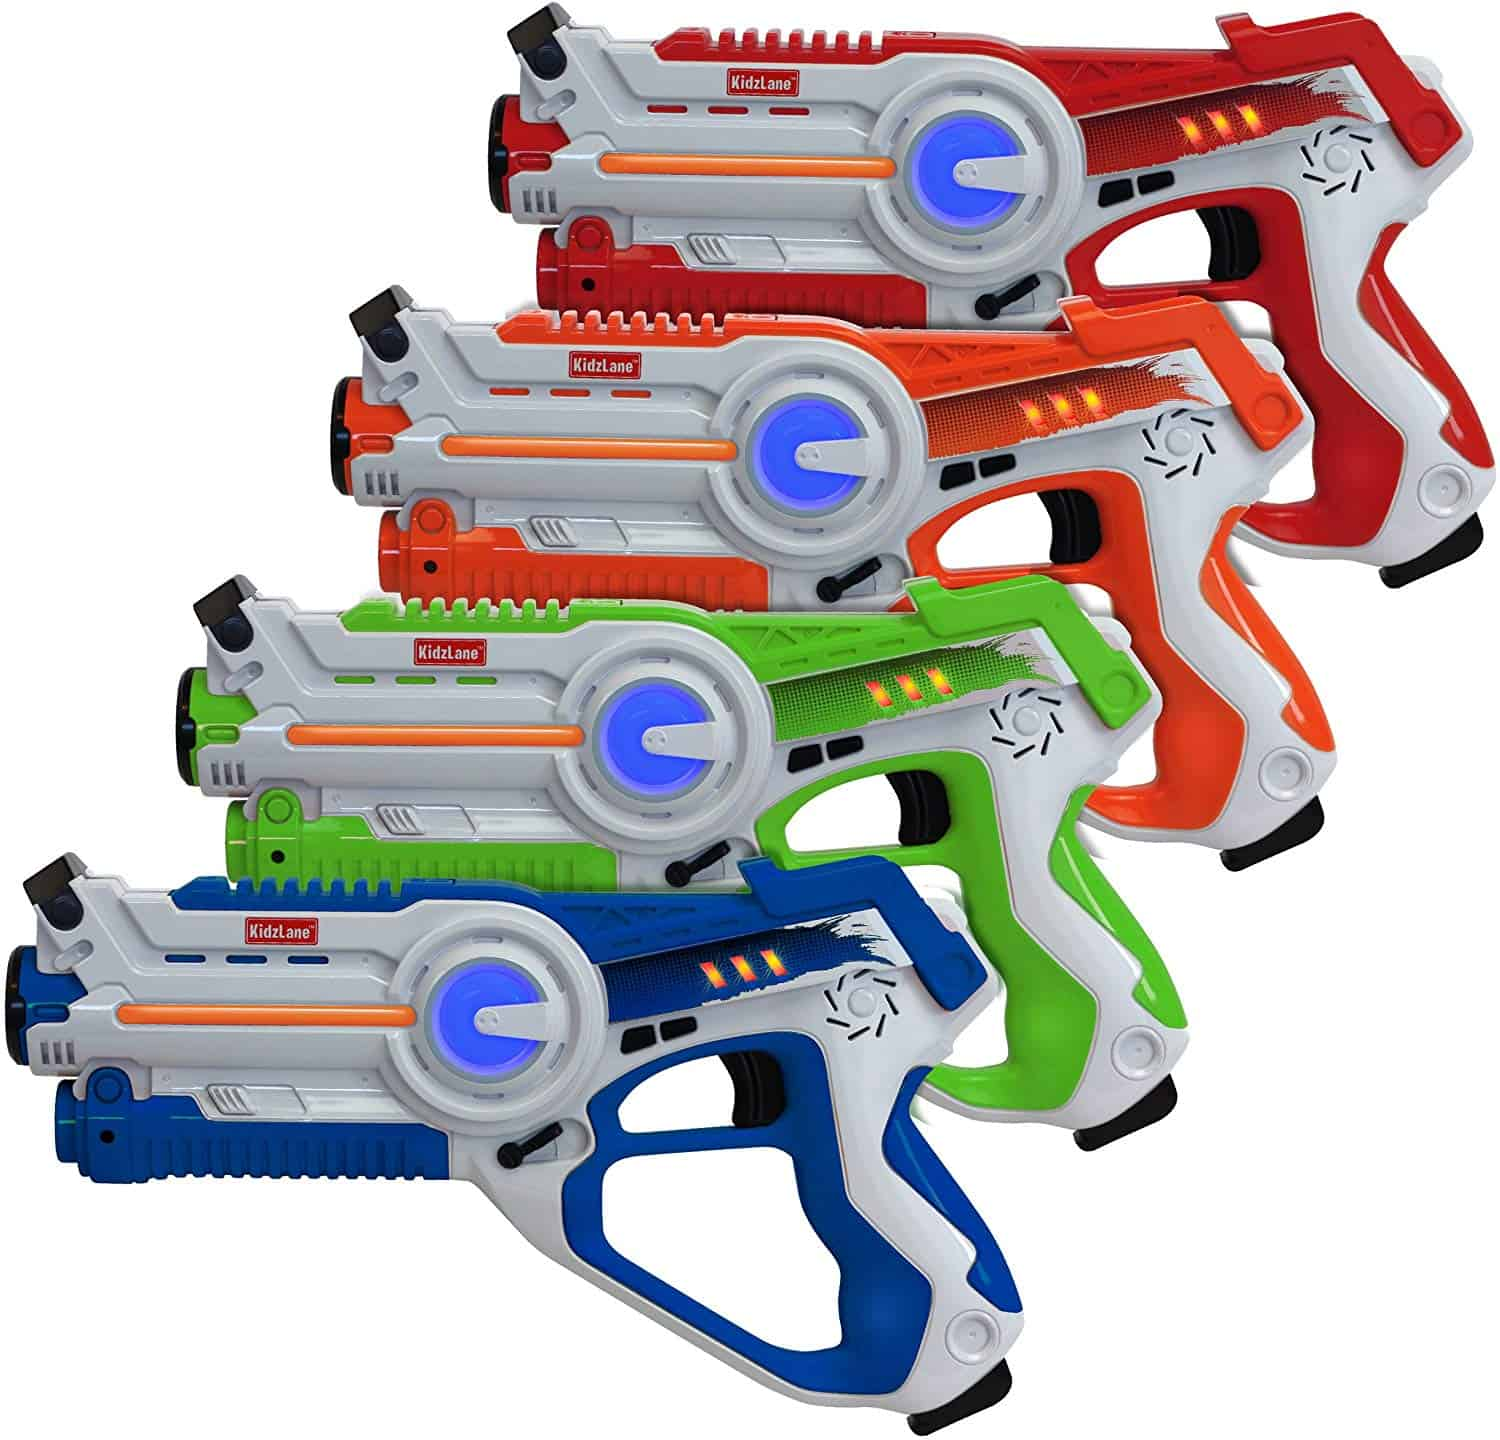 Toy guns available in a variety of colors.